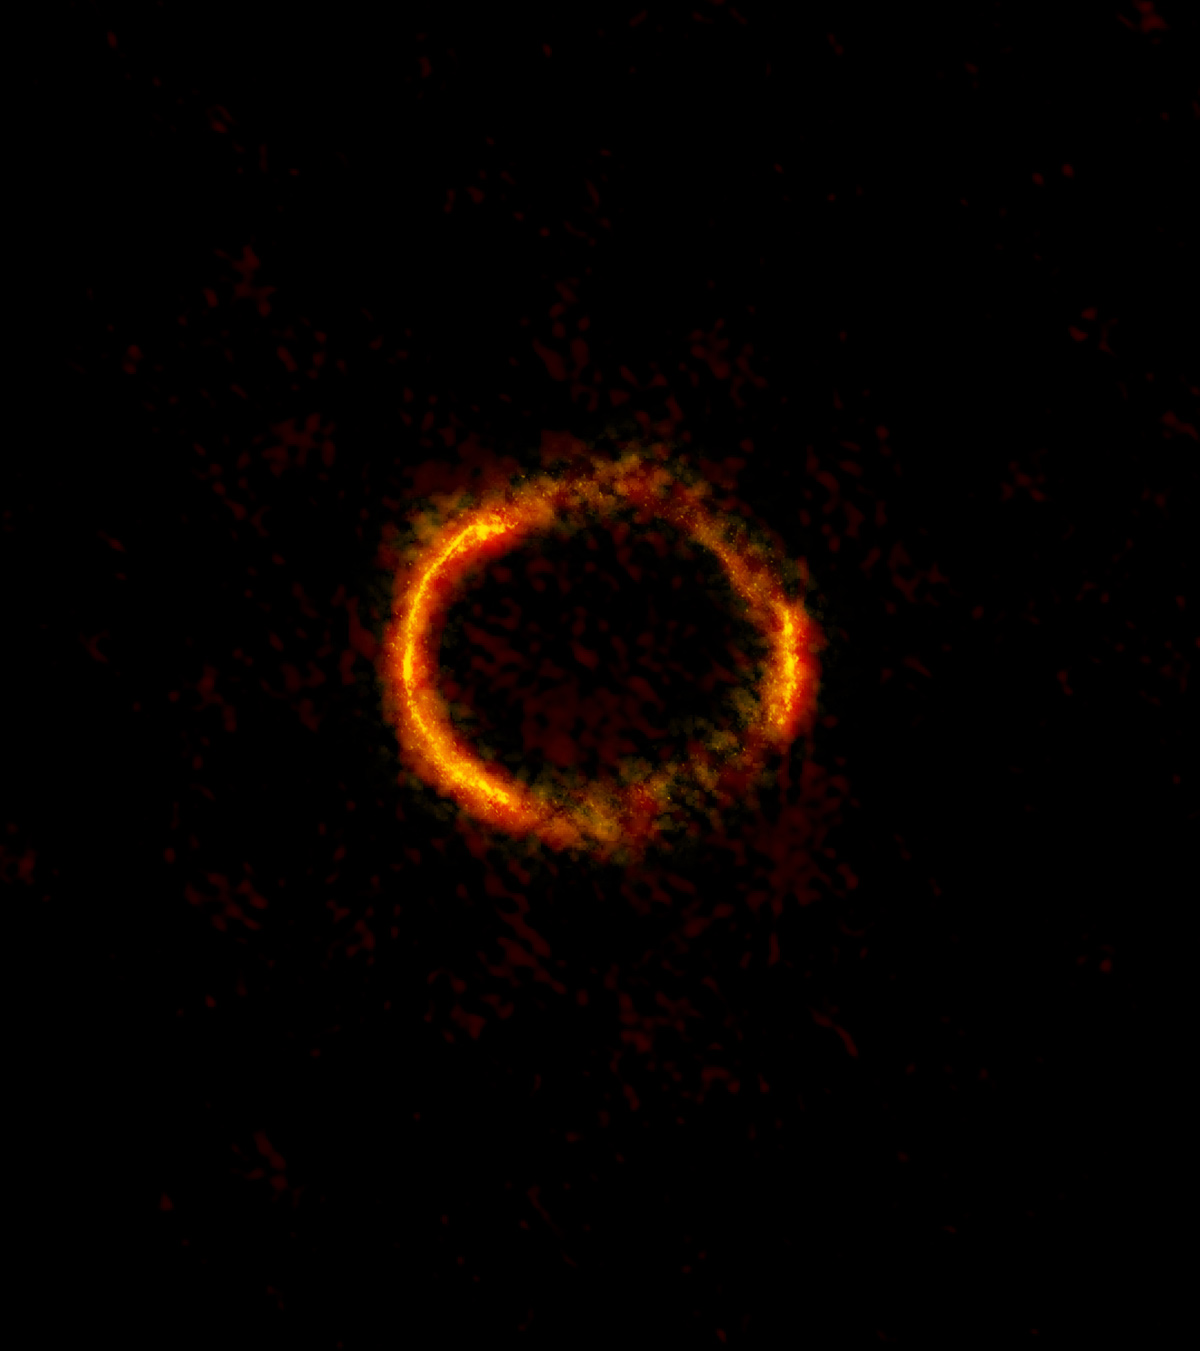 Gravitationally Lensed Galaxy SDP.81